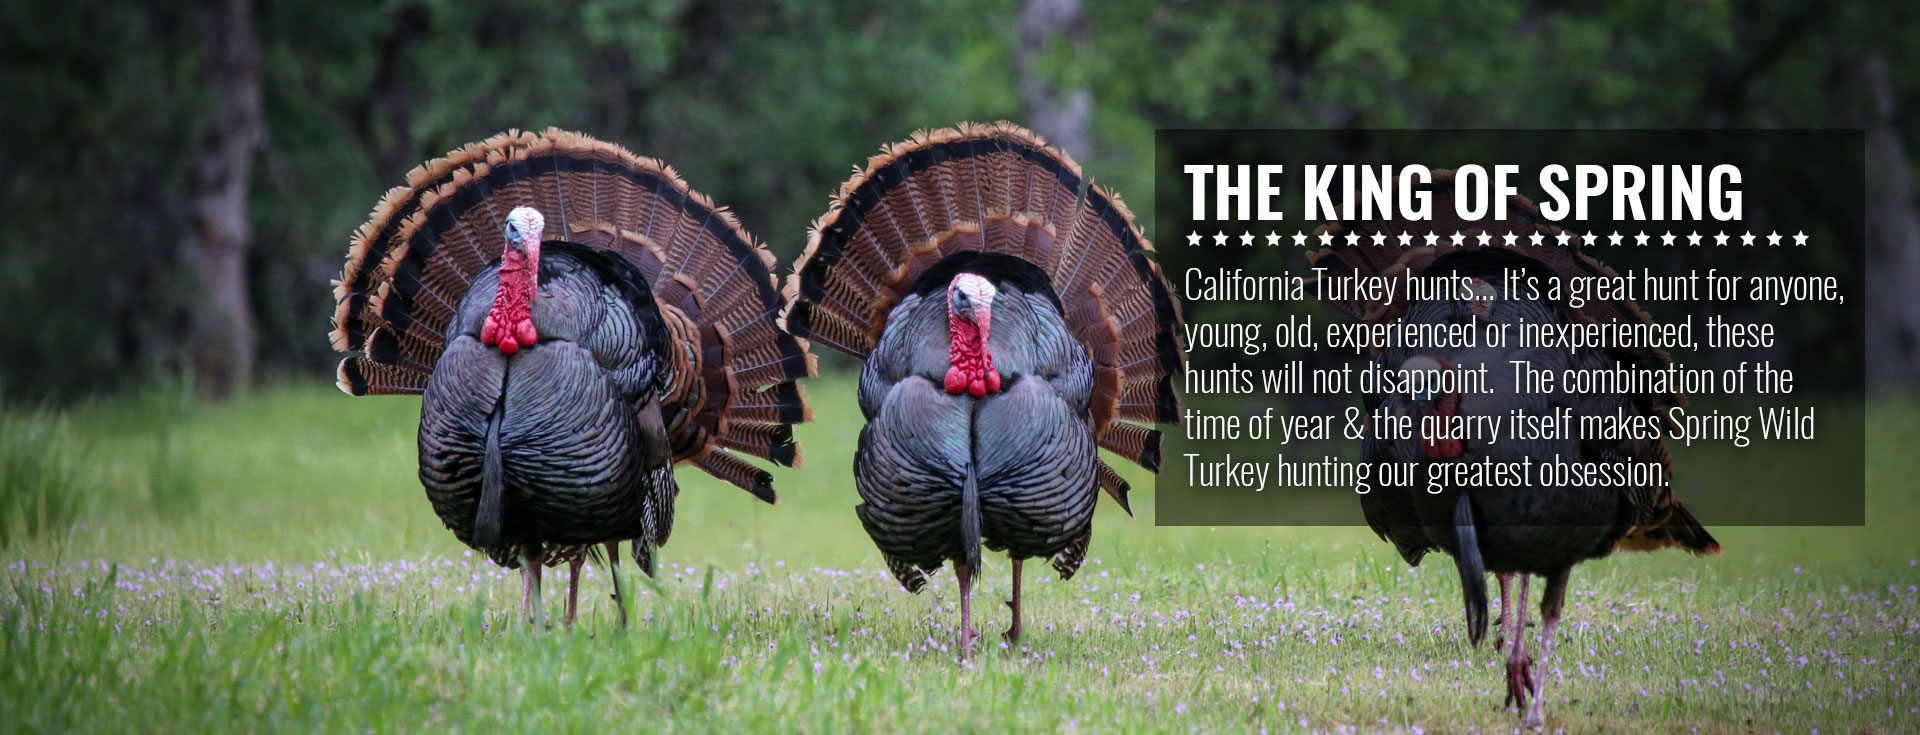 Wild Turkey Hunting Northern California with SC2 Outdoors